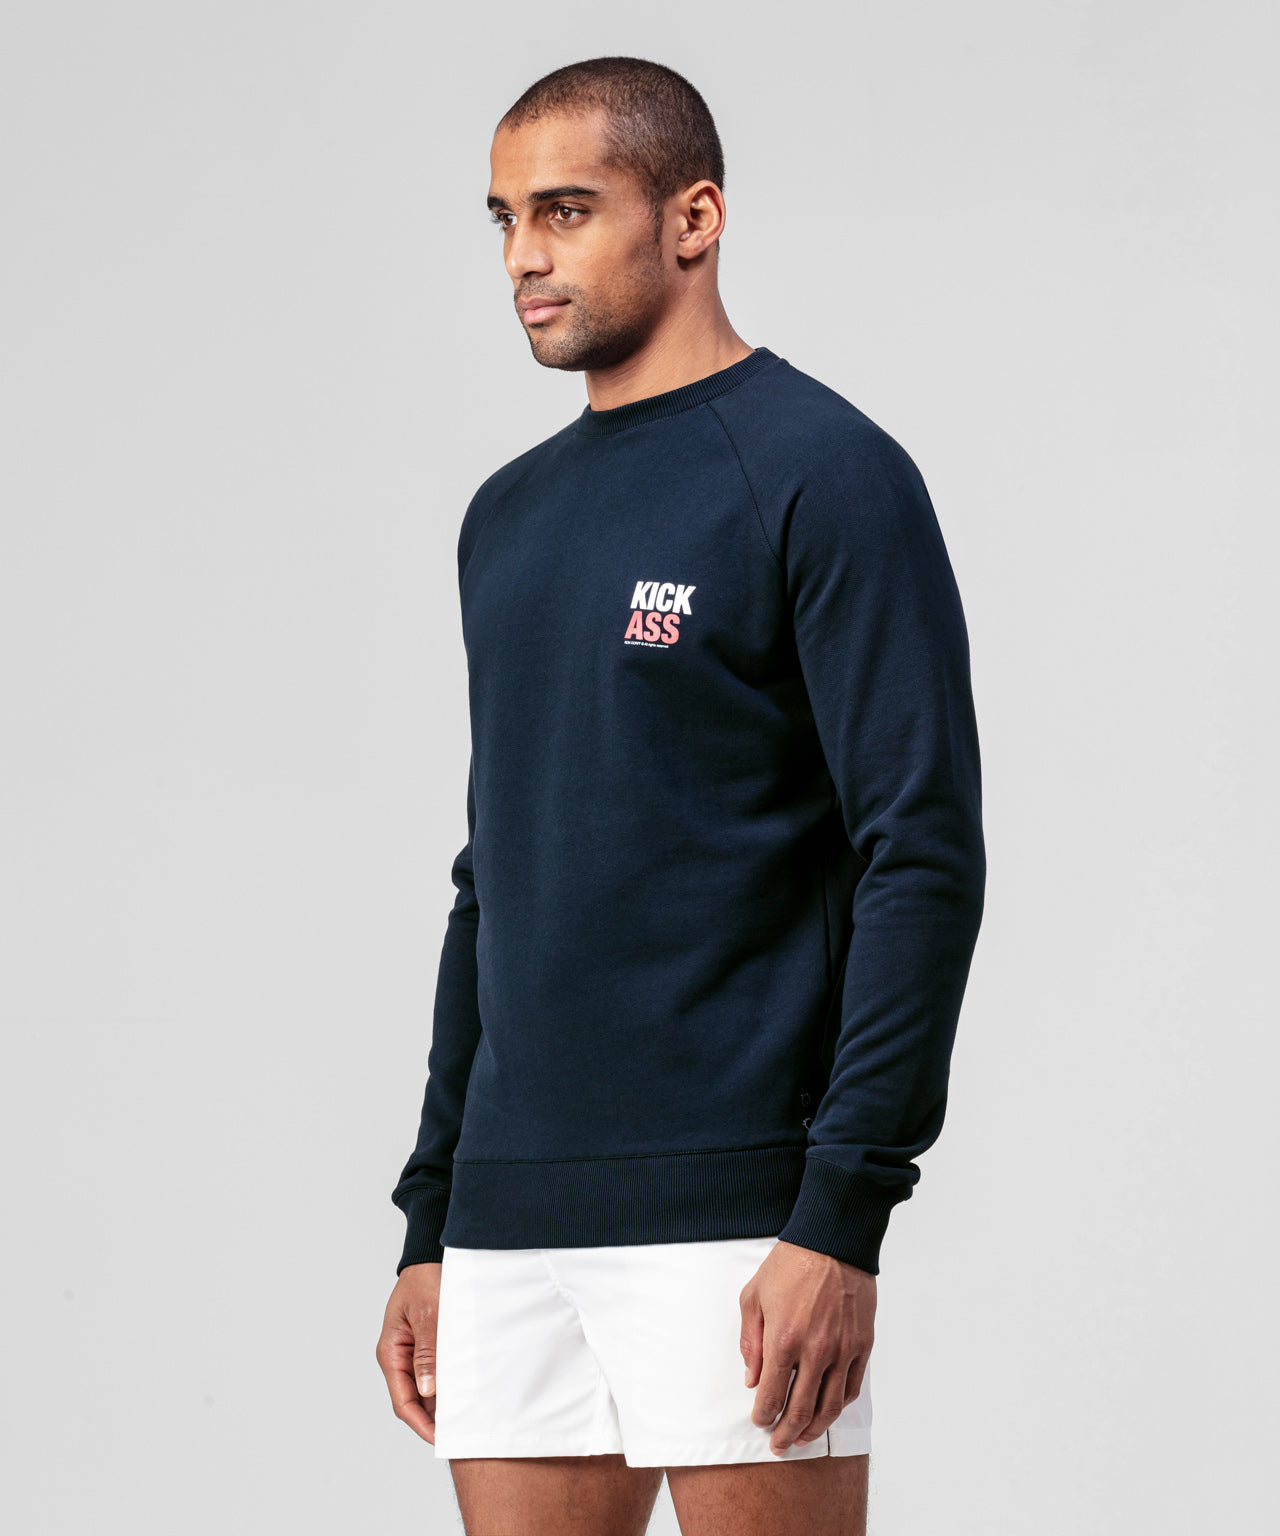 Sweatshirt KICK ASS - navy